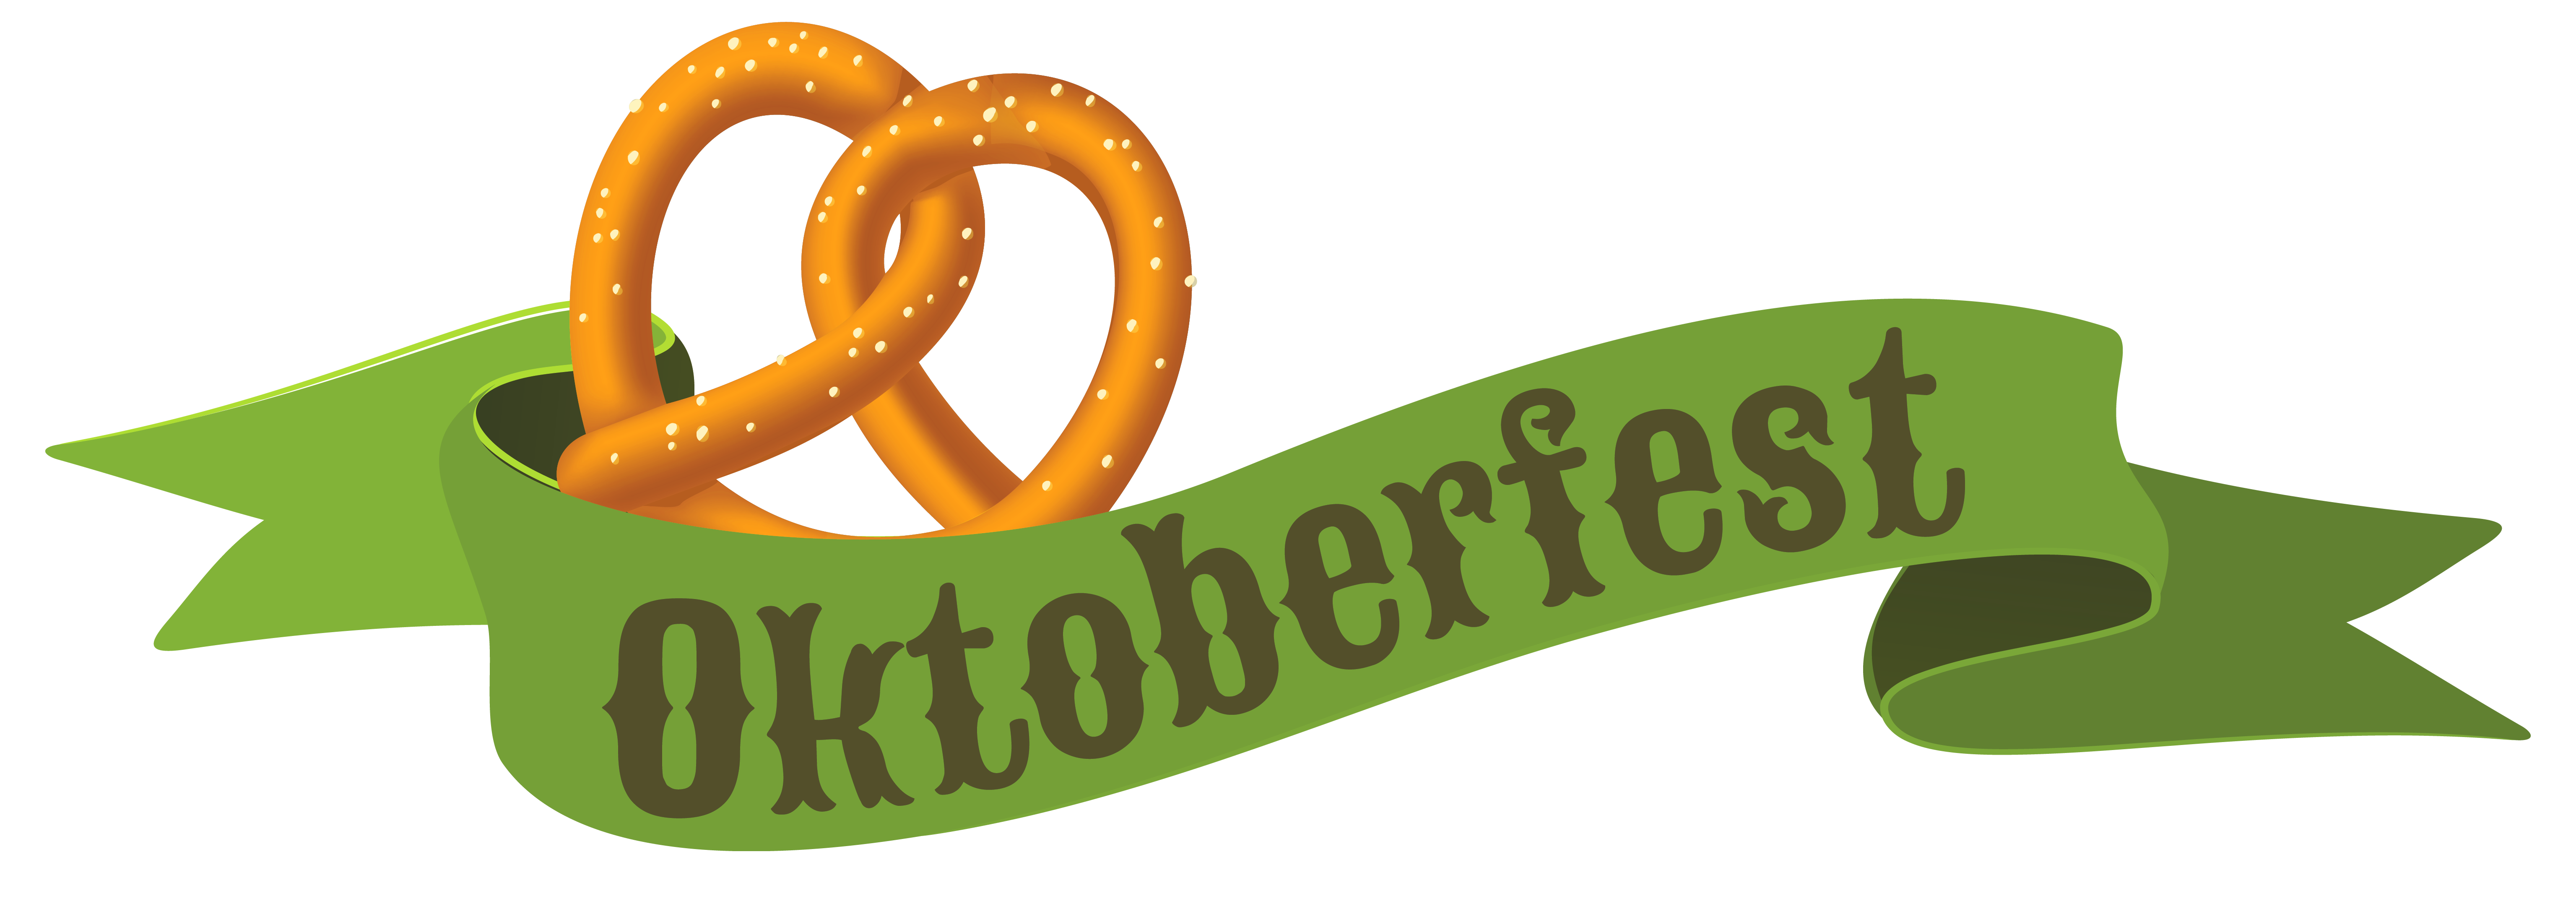 clipart library library Green banner png image. Oktoberfest clipart.